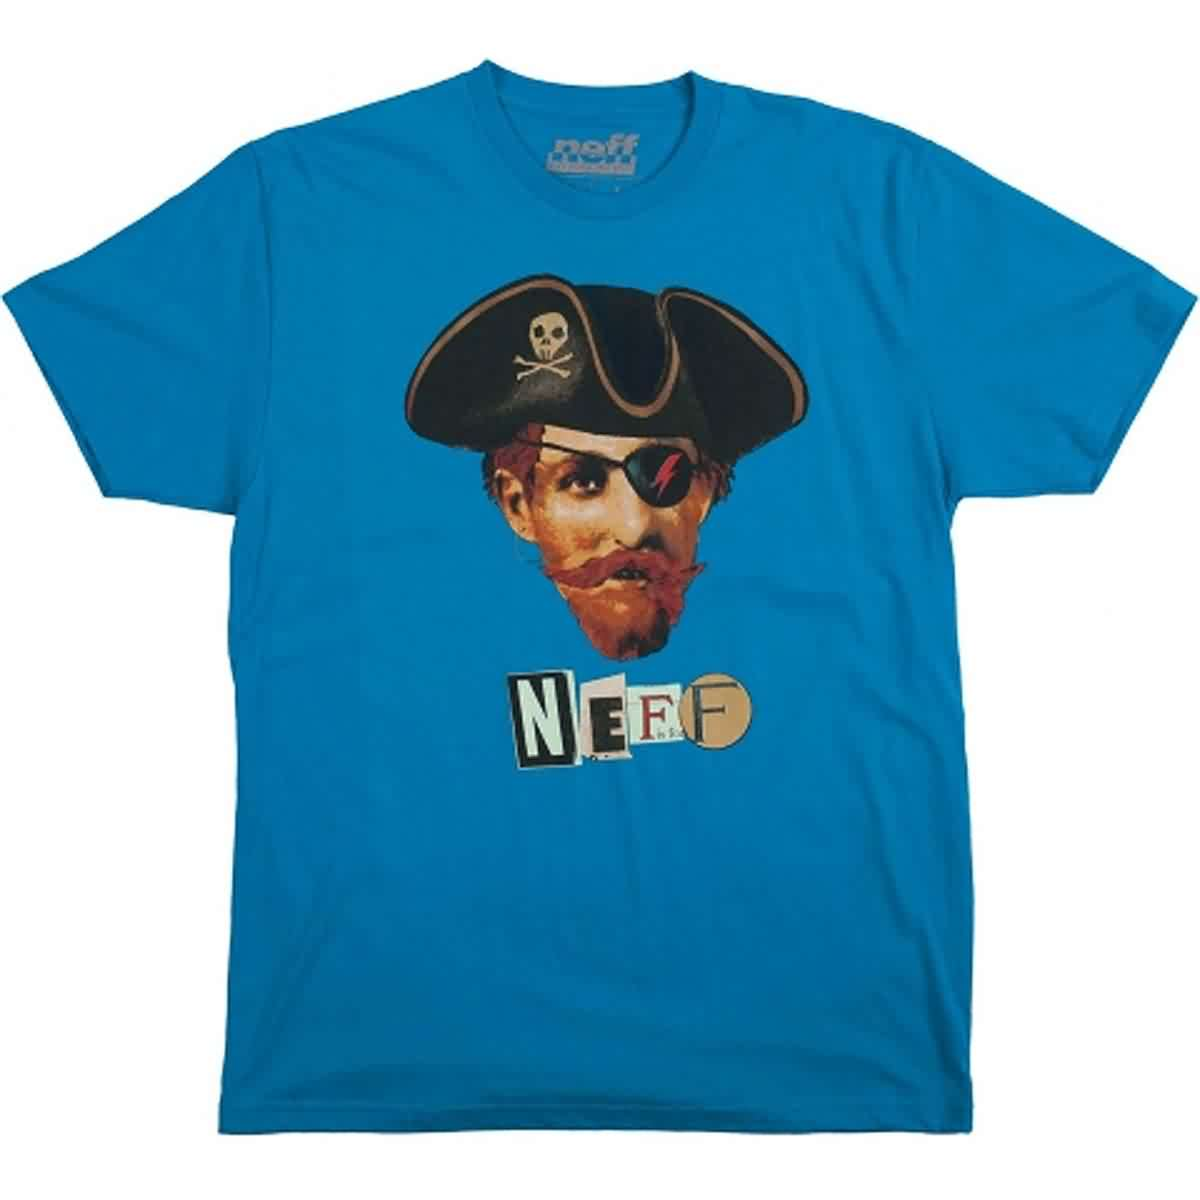 Neff Pirate Bolty Men's Short-Sleeve Shirts - Turquoise